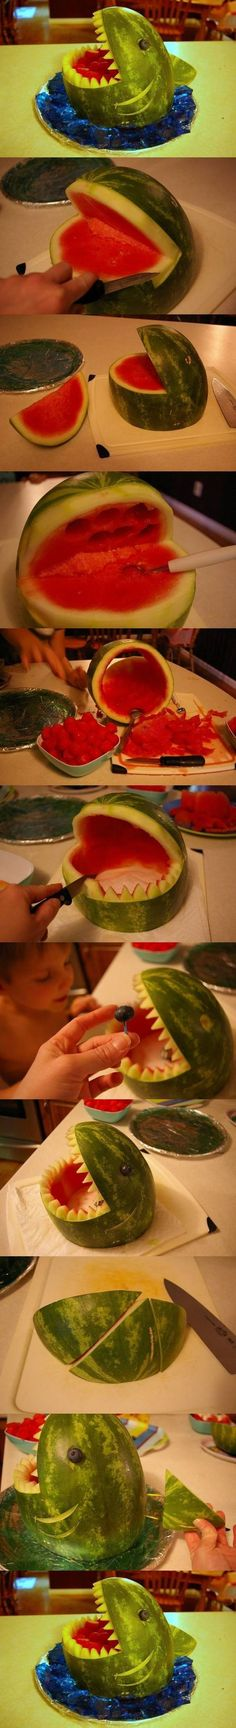 DIY Watermelon Shark #Food